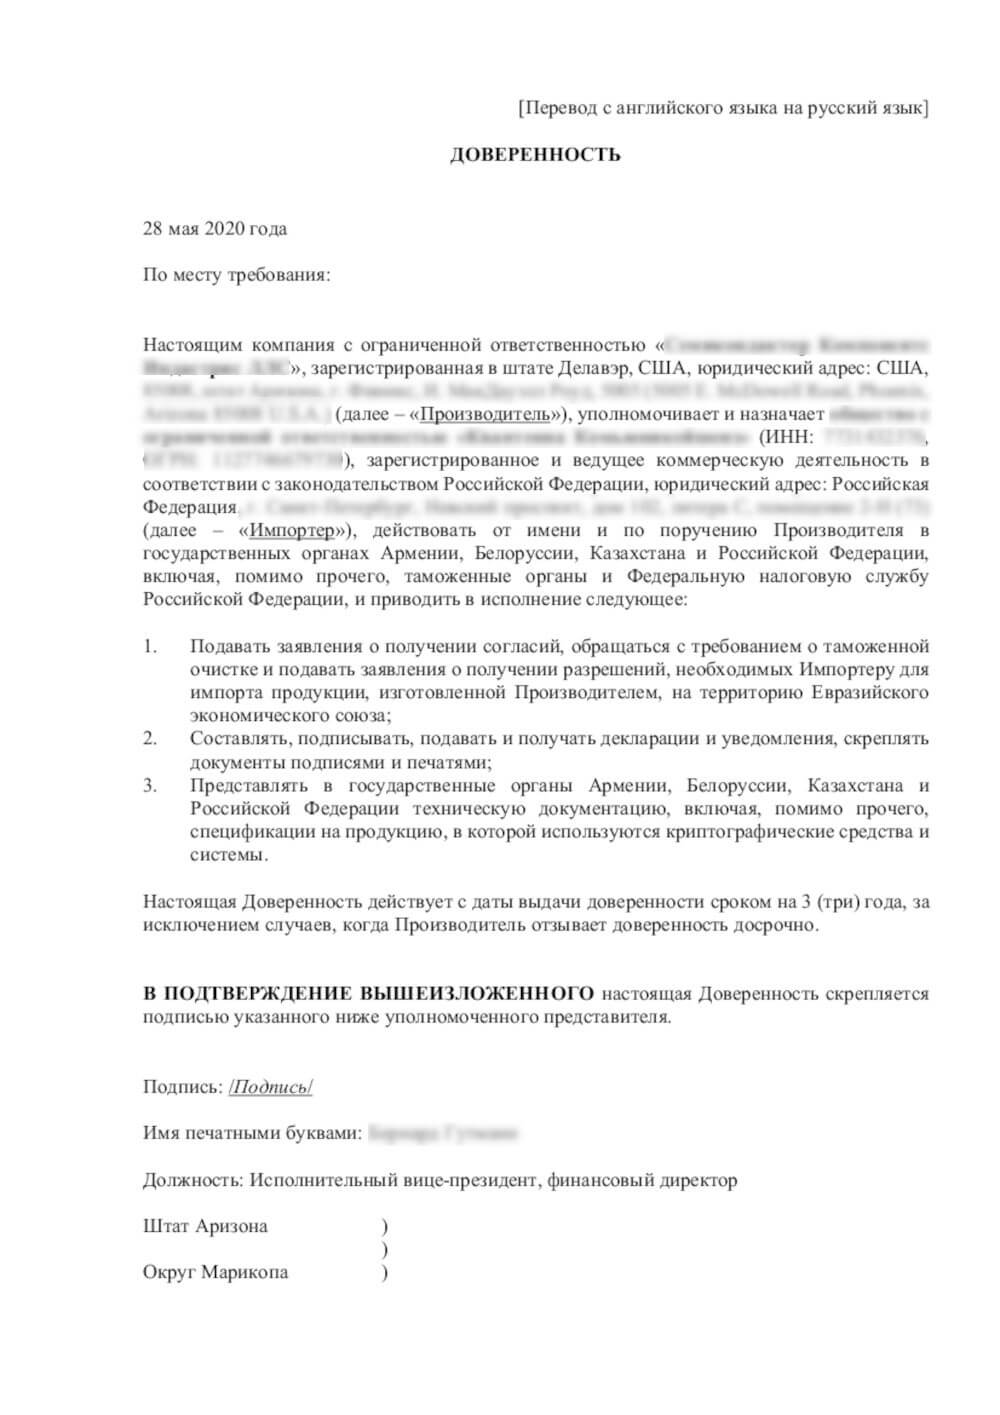 POA translated into Russian (page 1)